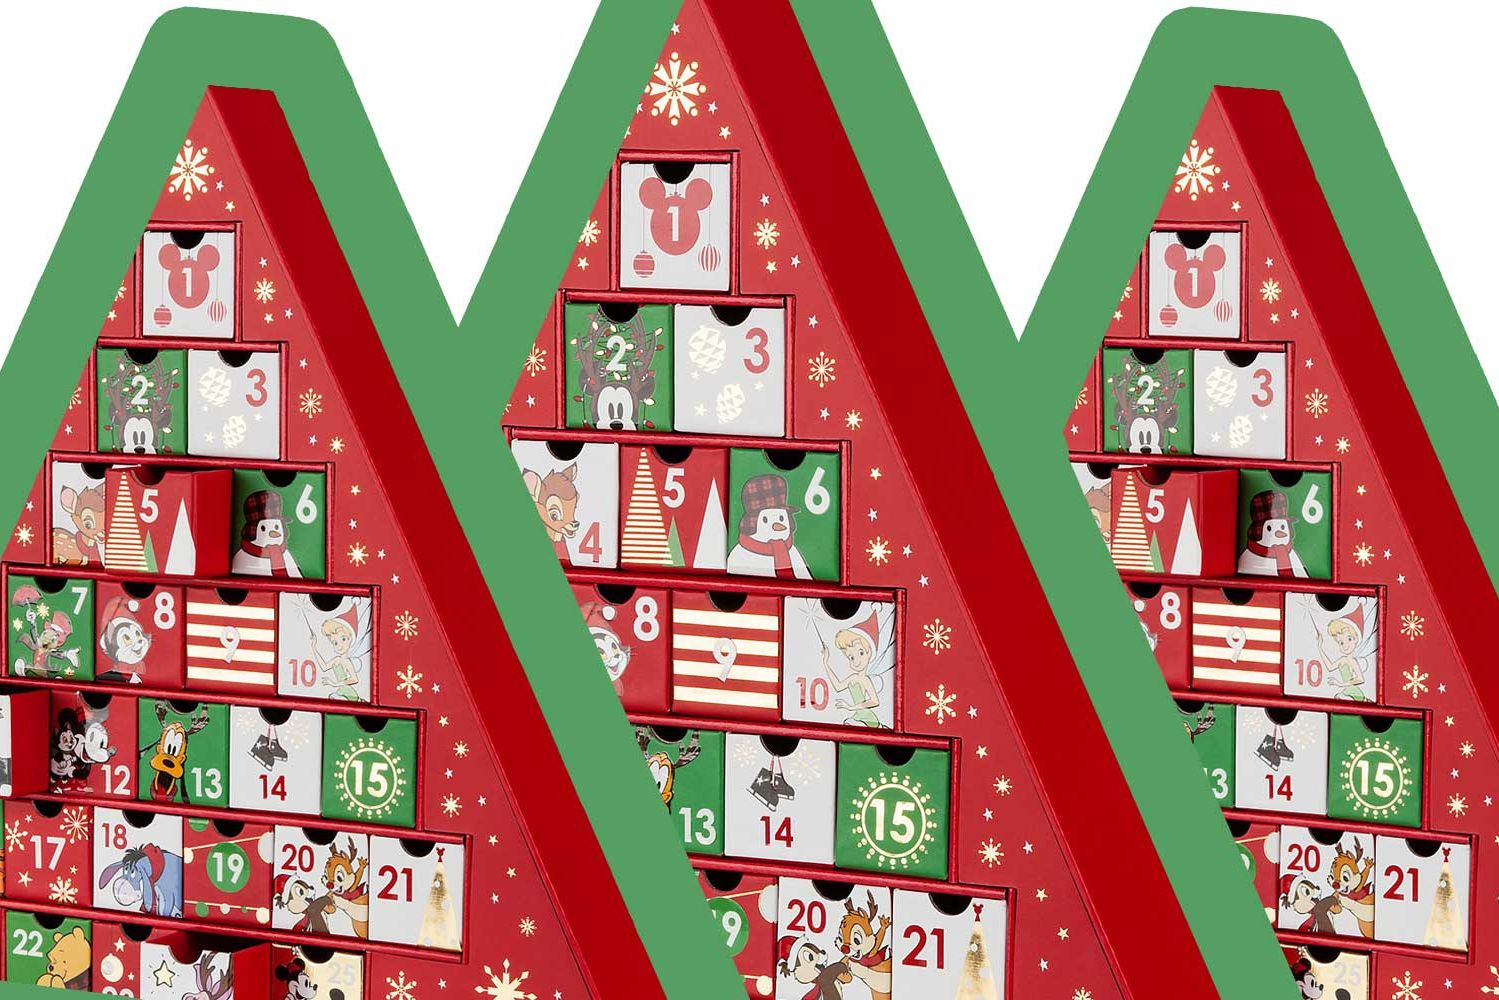 This Empty Disney Advent Calendar Doesn't Include Gifts, But Does Come With 'Stardust'